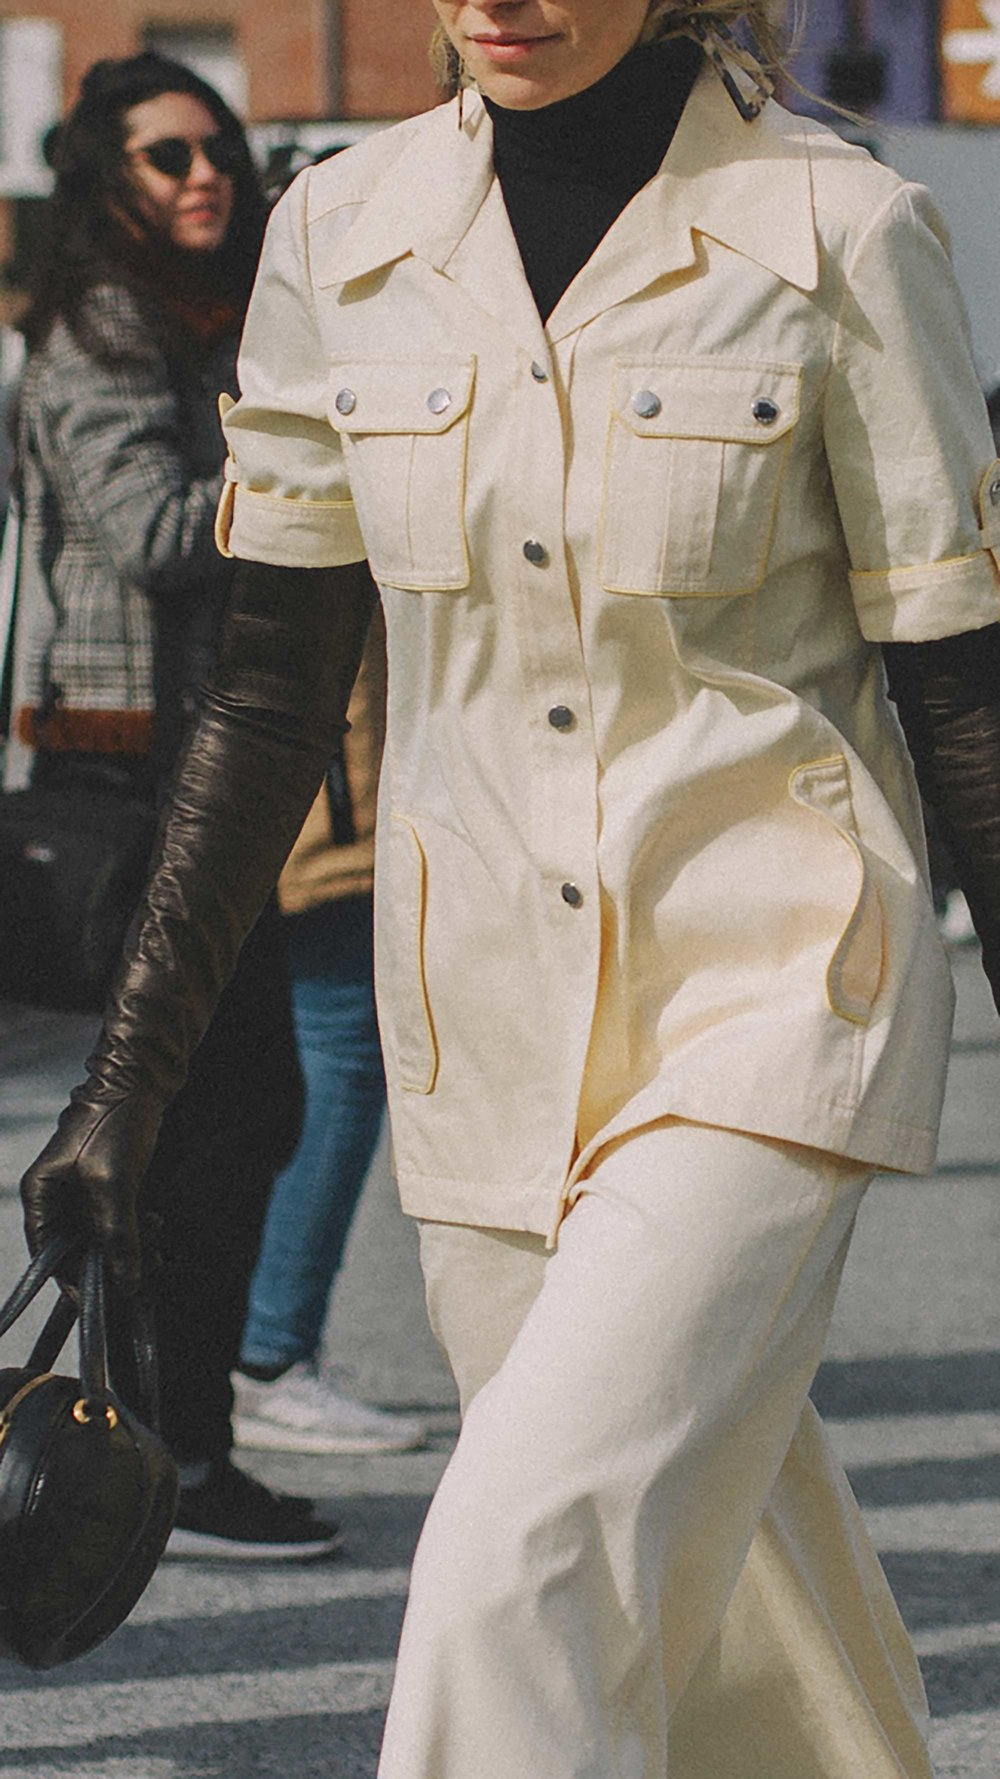 Best outfits of New York Fashion Week street style day four NYFW FW19 - 36.jpg